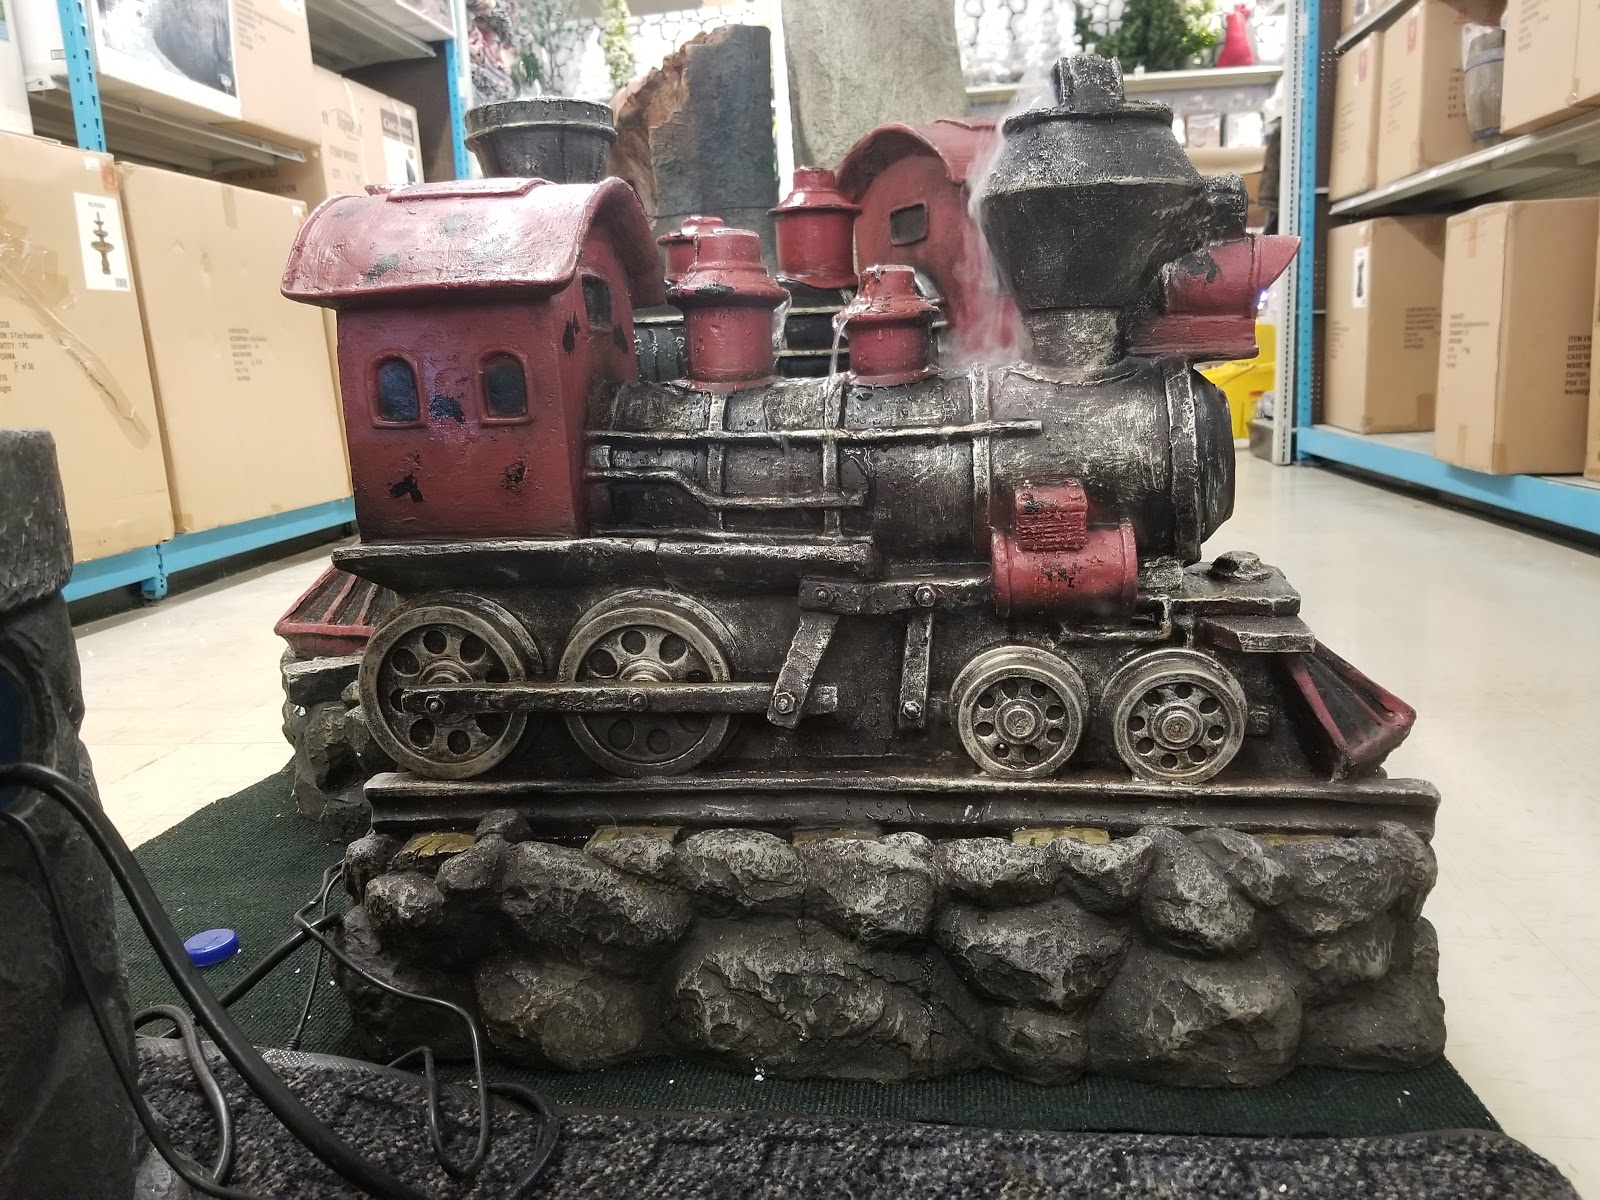 Outdoor Train Fountain On Display In Store